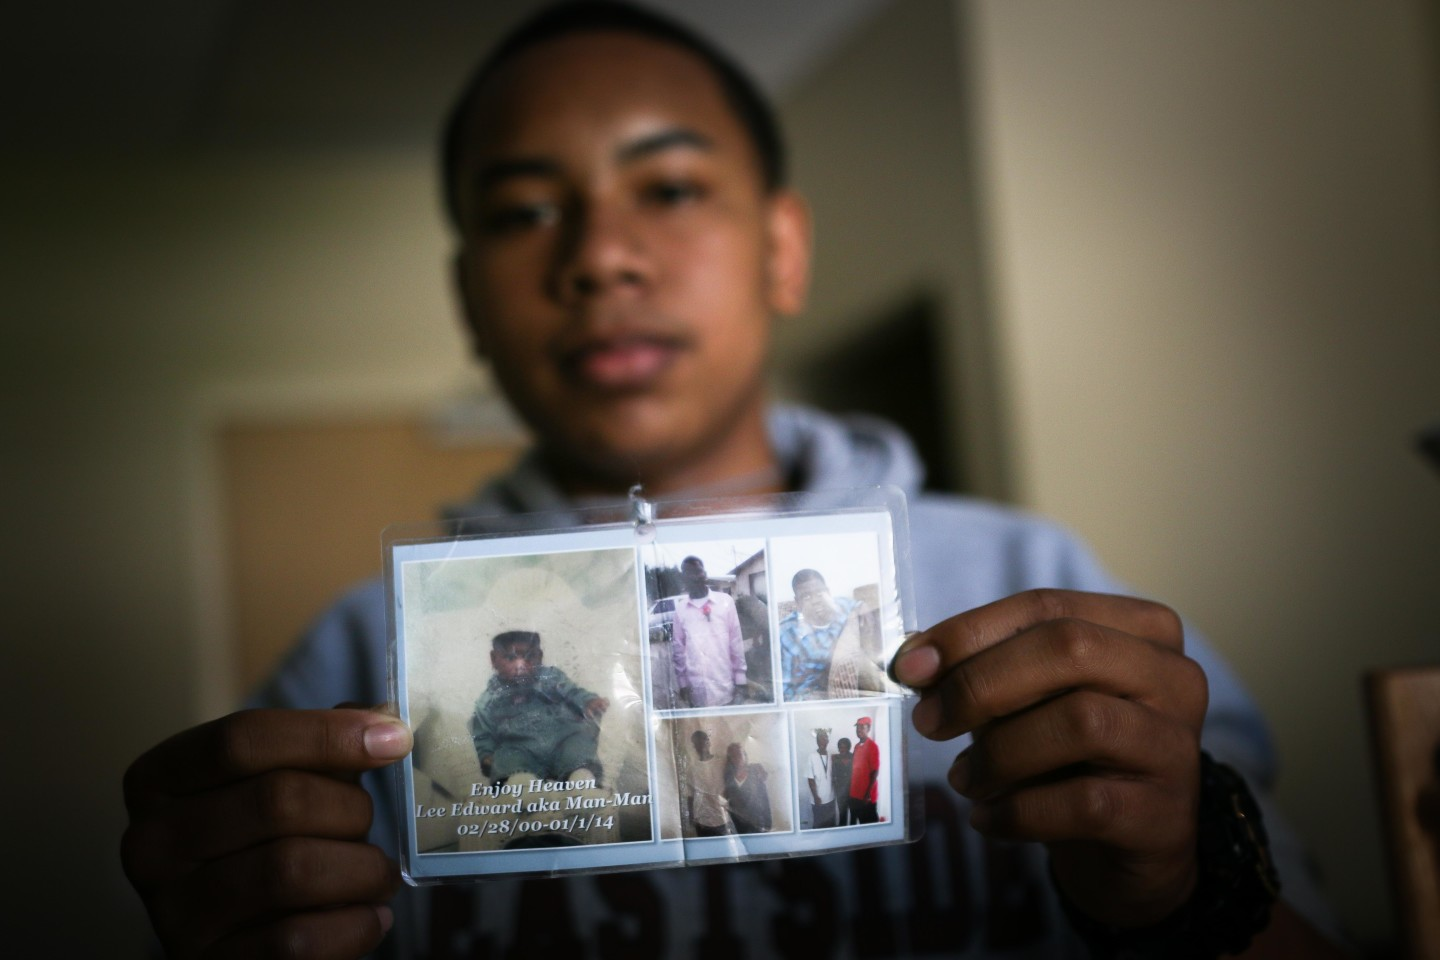 Diamond Allen shows off pictures of his friend, Lee Weathersby III, who was shot and killed in Oakland. (Jeremy Raff/KQED)